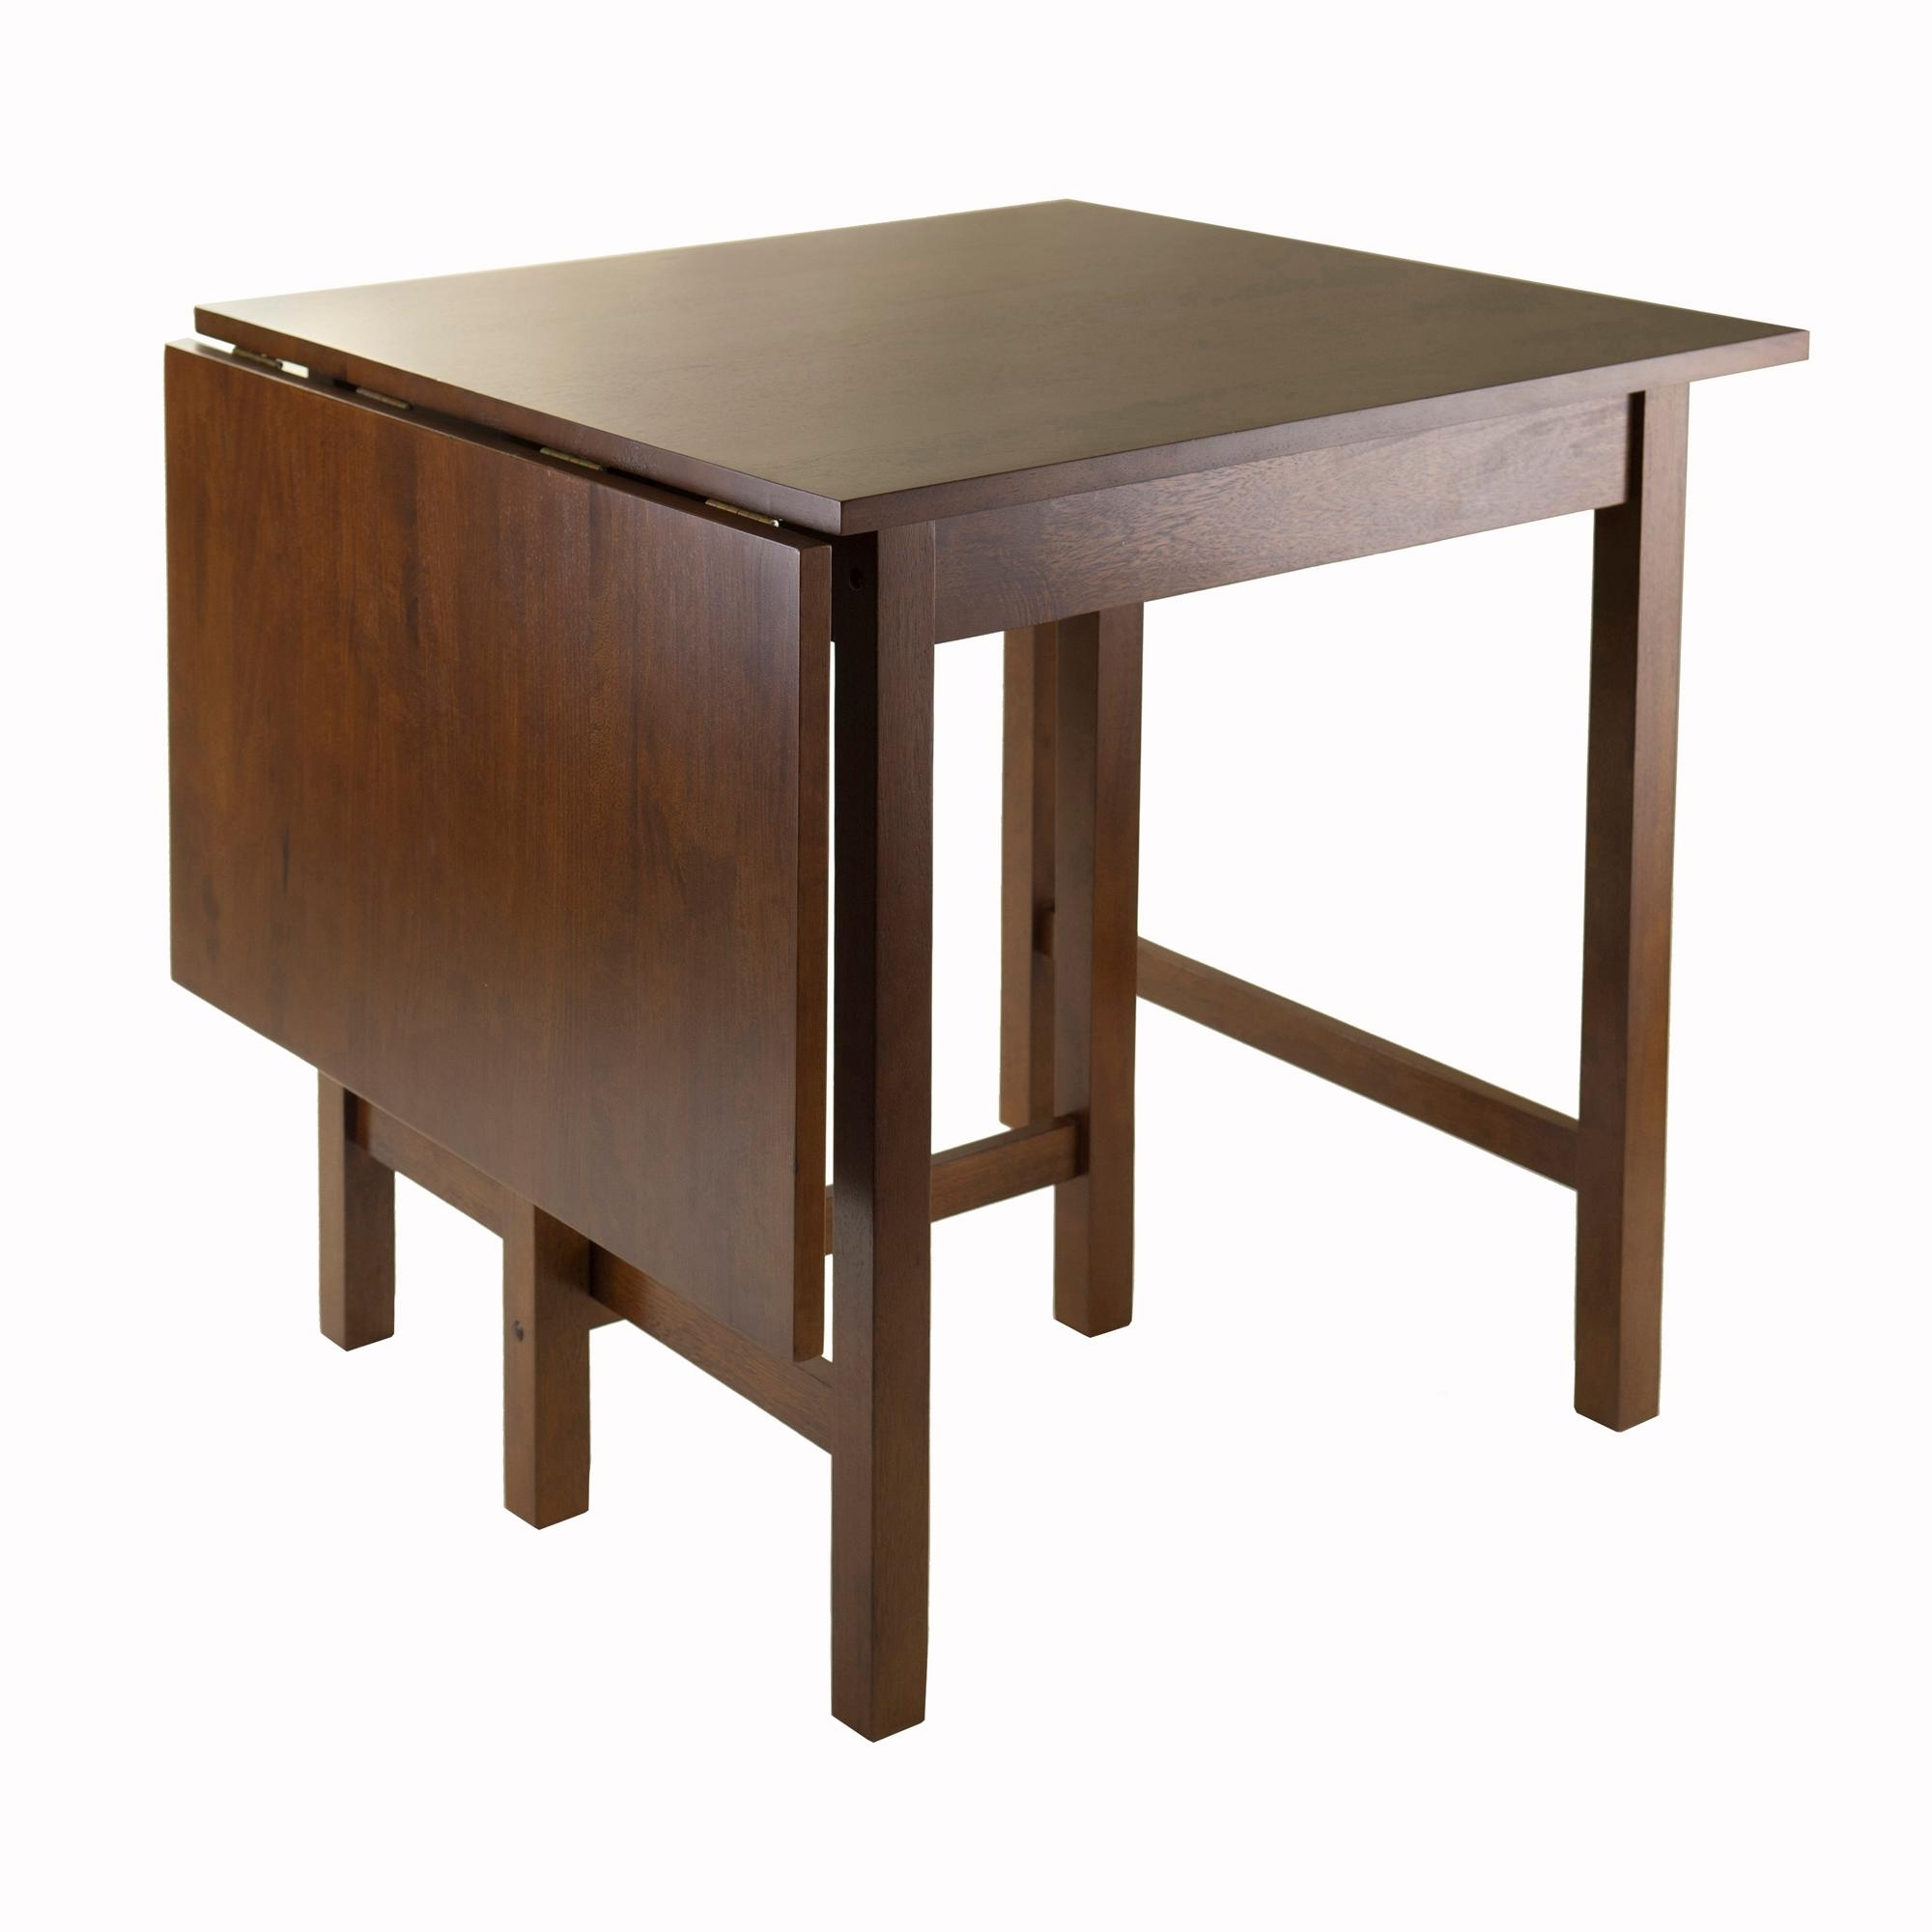 Well Liked Winsome Wood Lynden Drop Leaf Dining Table: Amazon (View 18 of 25)